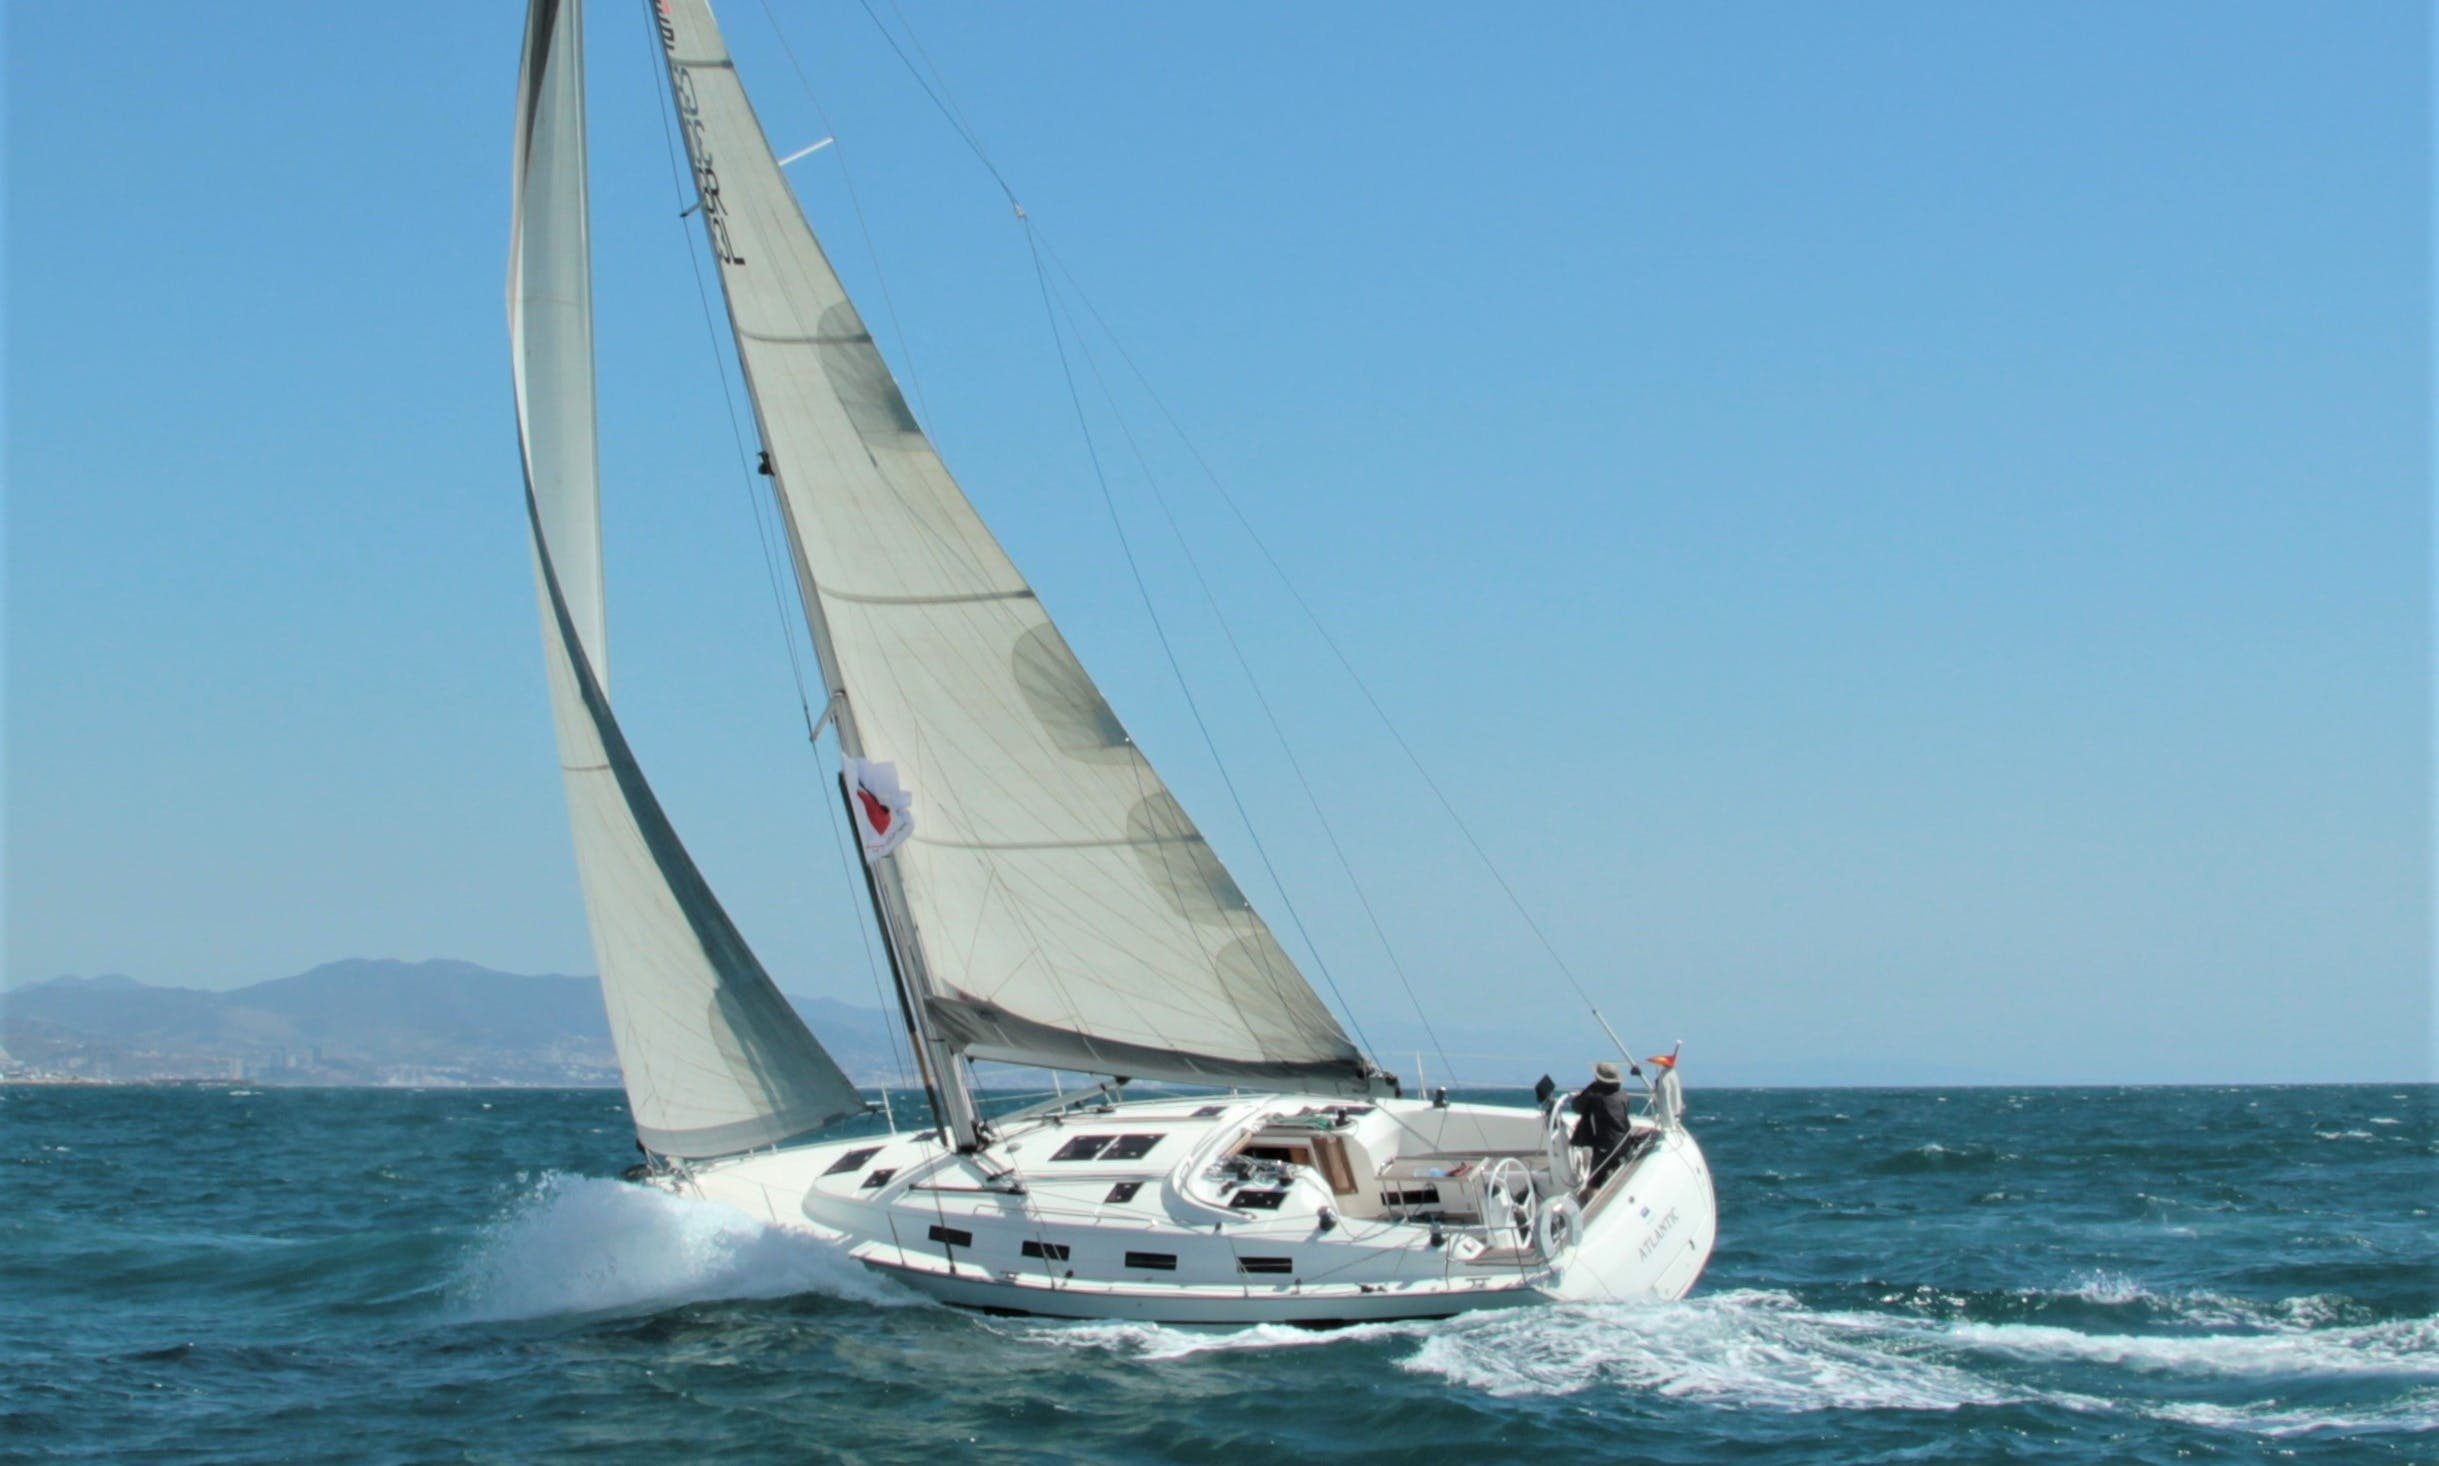 Charter this 2017 Bavaria 40S for 12 Guests in Barcelona, Spain!